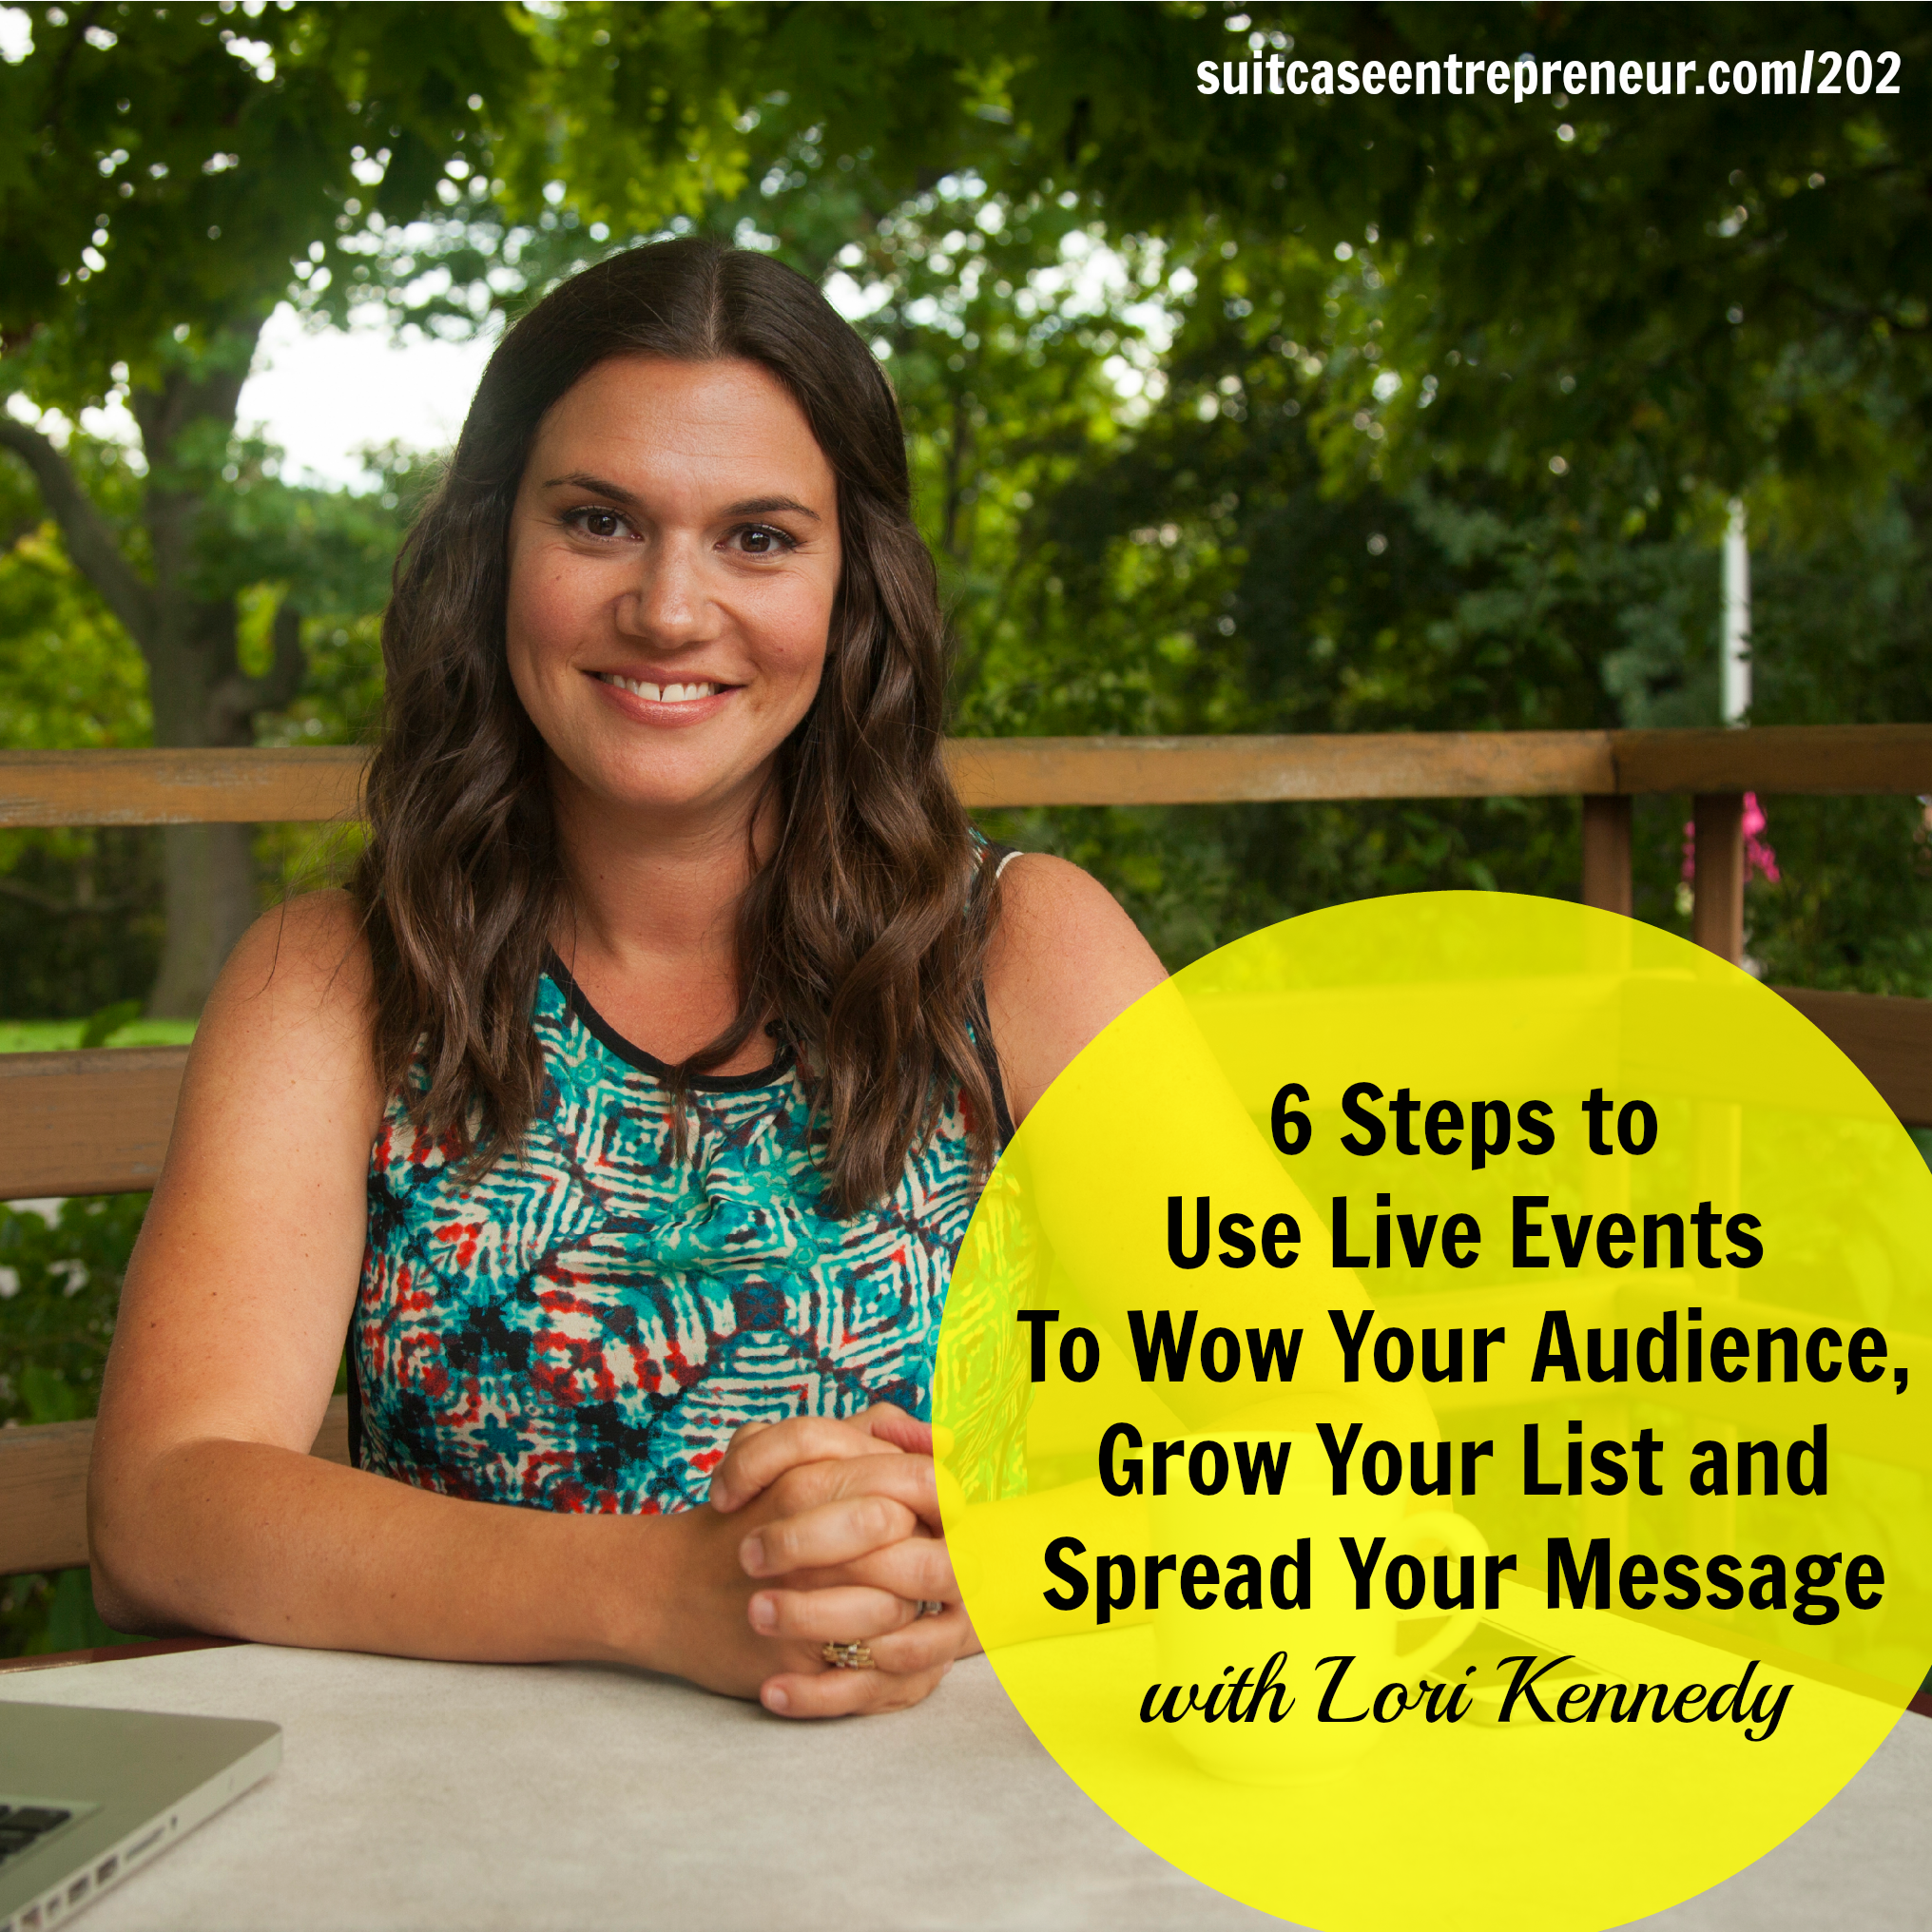 [202] 6 Steps to Use Live Events To Wow Your Audience, Grow Your List and Spread Your Message with Lori Kennedy